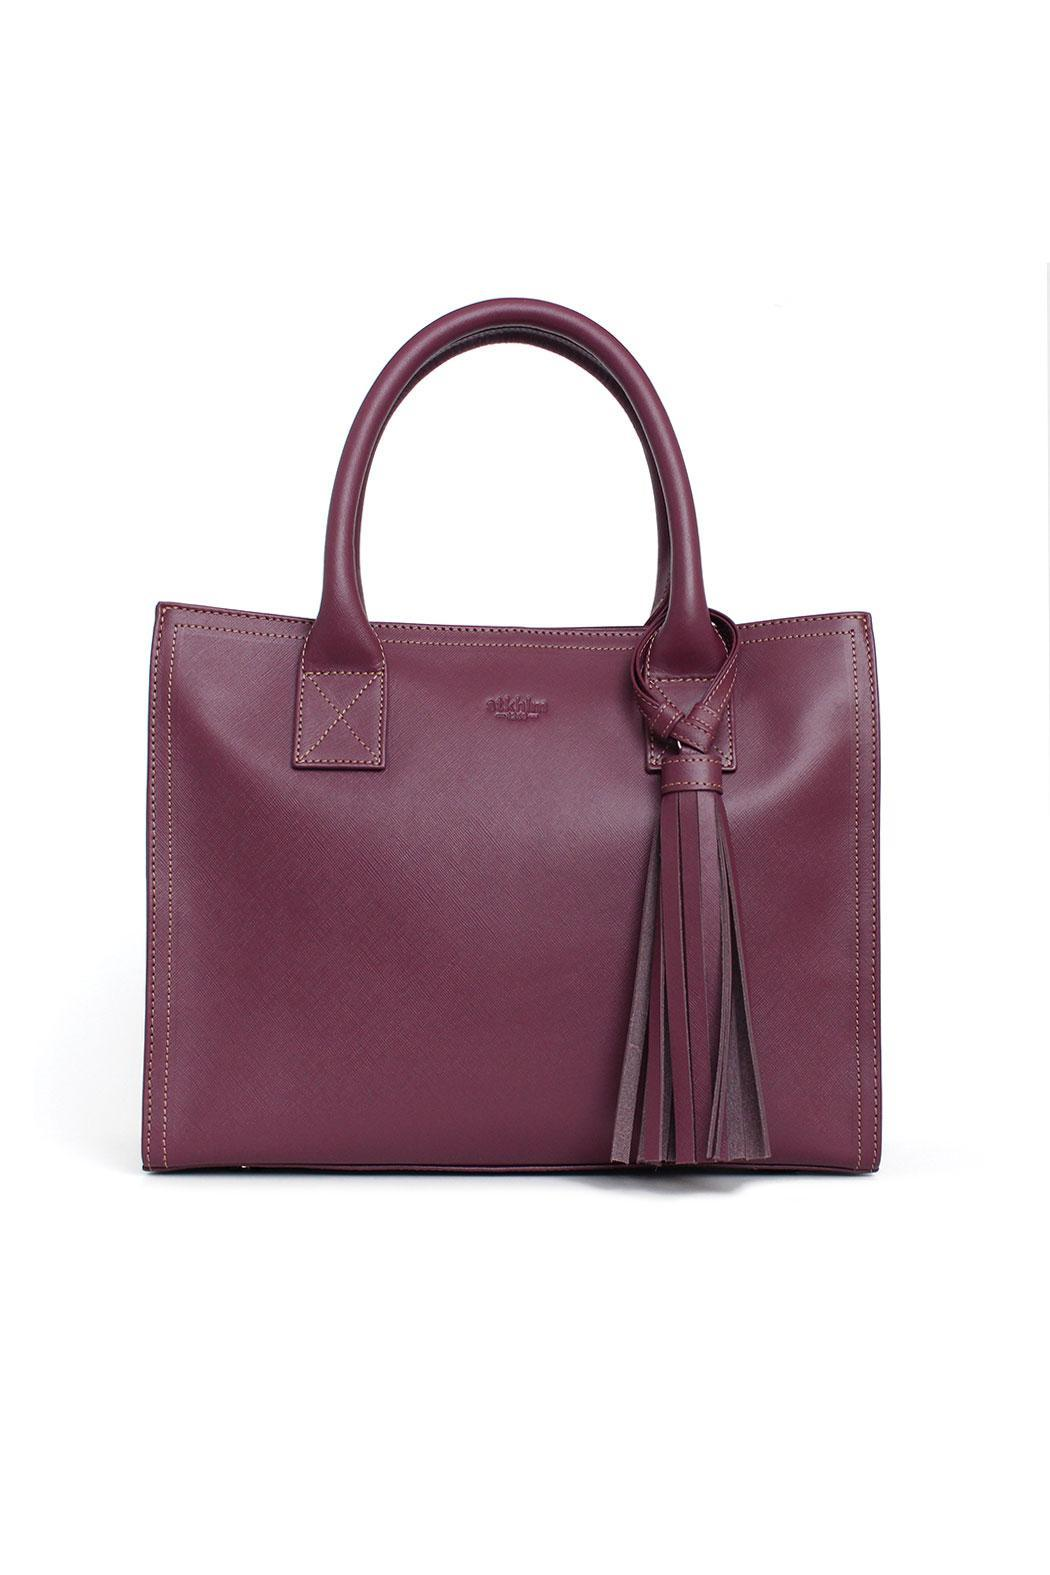 estocolmoapparel Purple Leather Handbag - Main Image